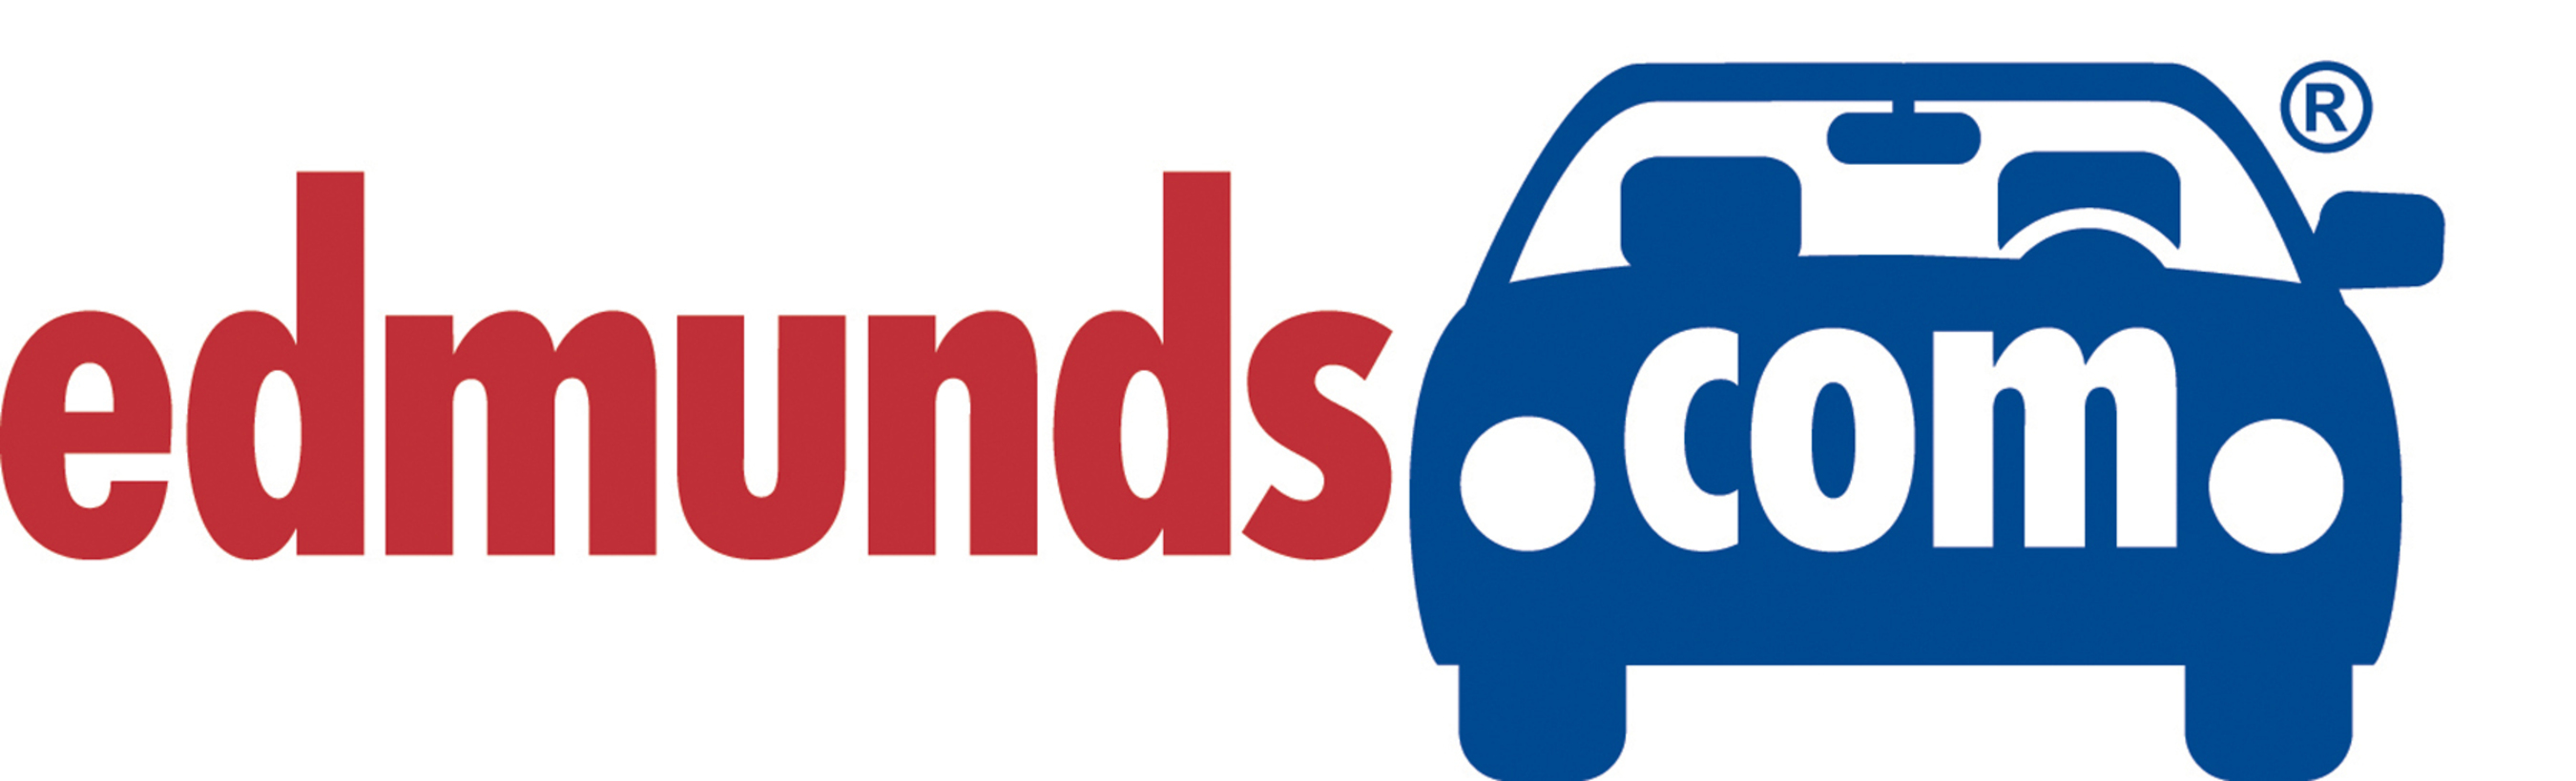 nearly 9 out of 10 used car shoppers willing to consider certified pre owned vehicles says edmunds